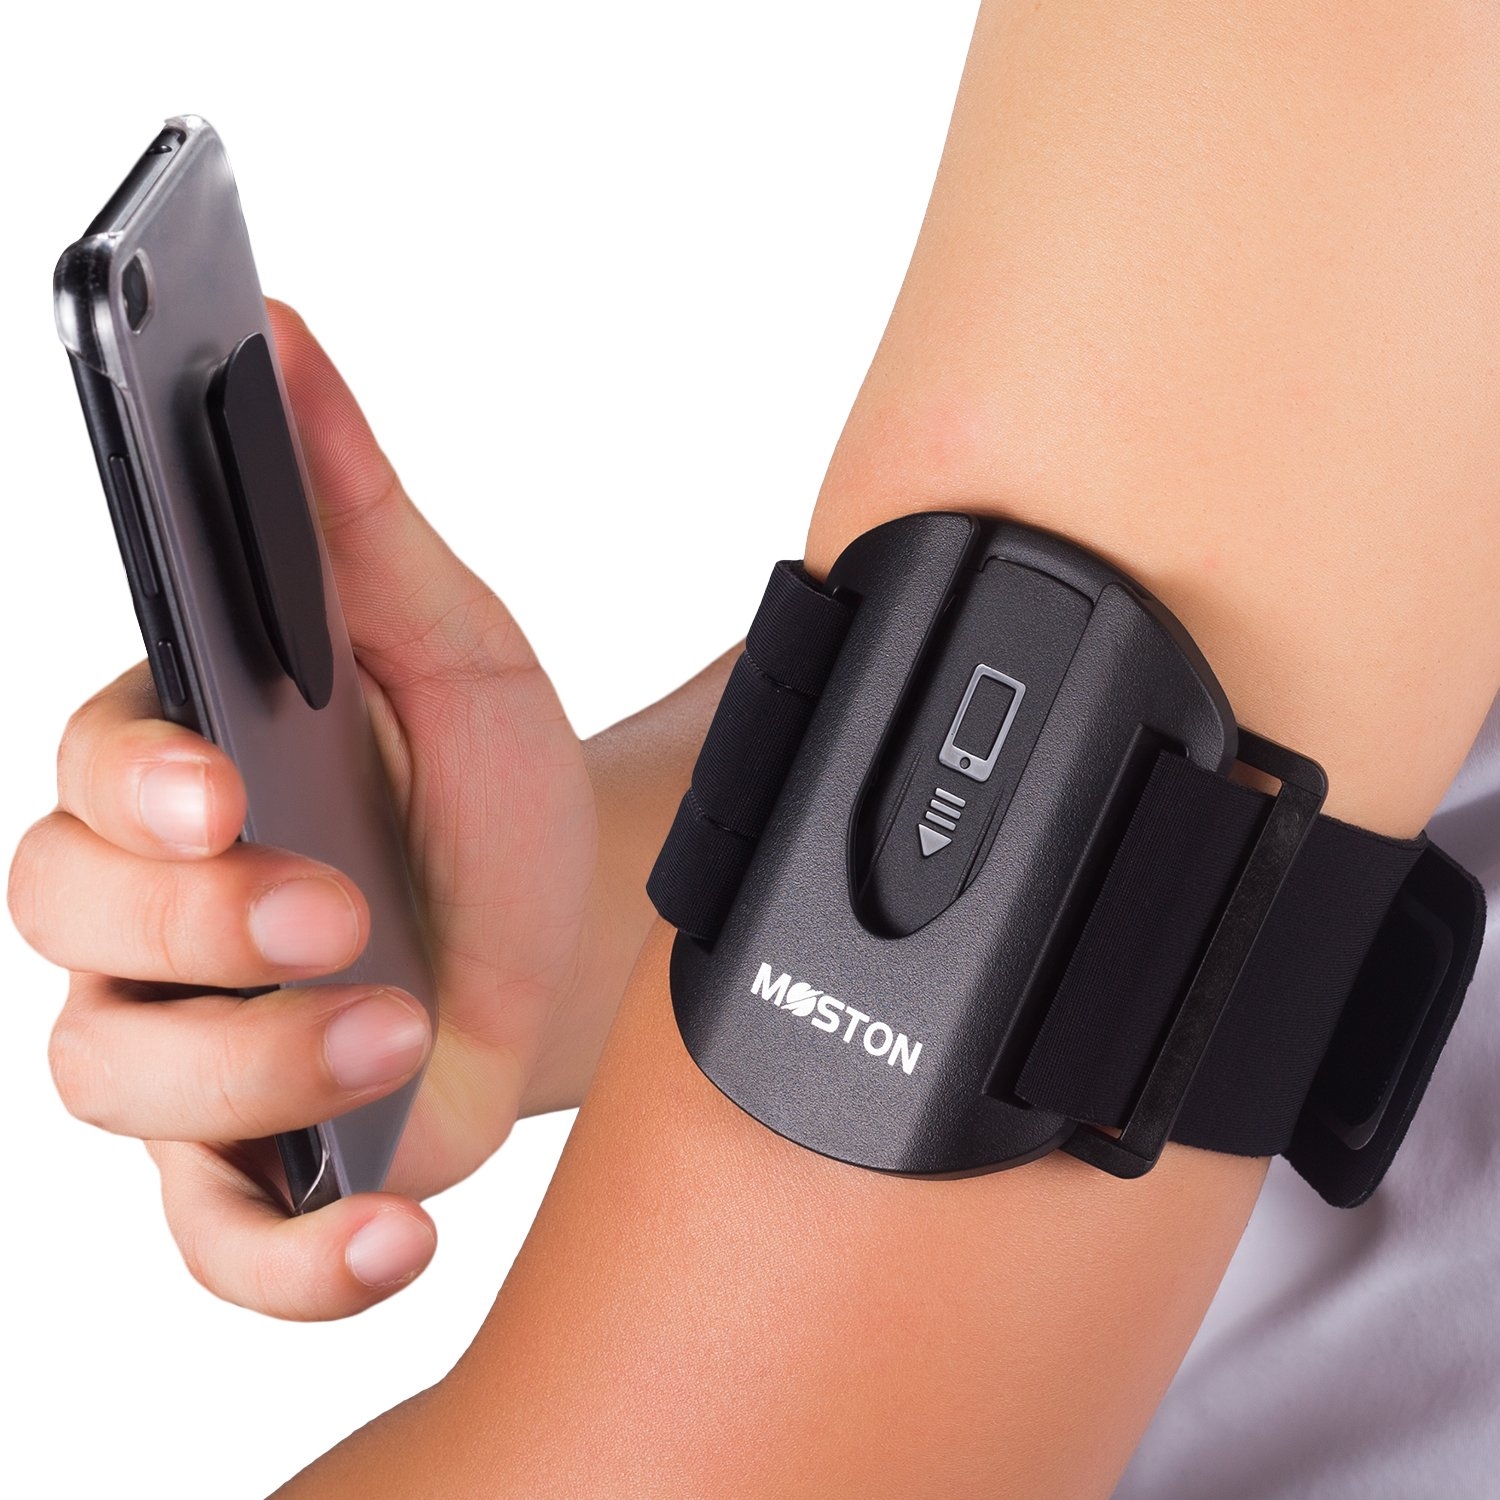 Moston 2017 New Design Sports Armband kit for All Cell Phone,Fast Slip-lock/unlock within a sec,Ideal for Running,Hiking,Cycling,Walking,Jogging,gym.Workout Arm Band for iphone/sumsung/LG phones,etc